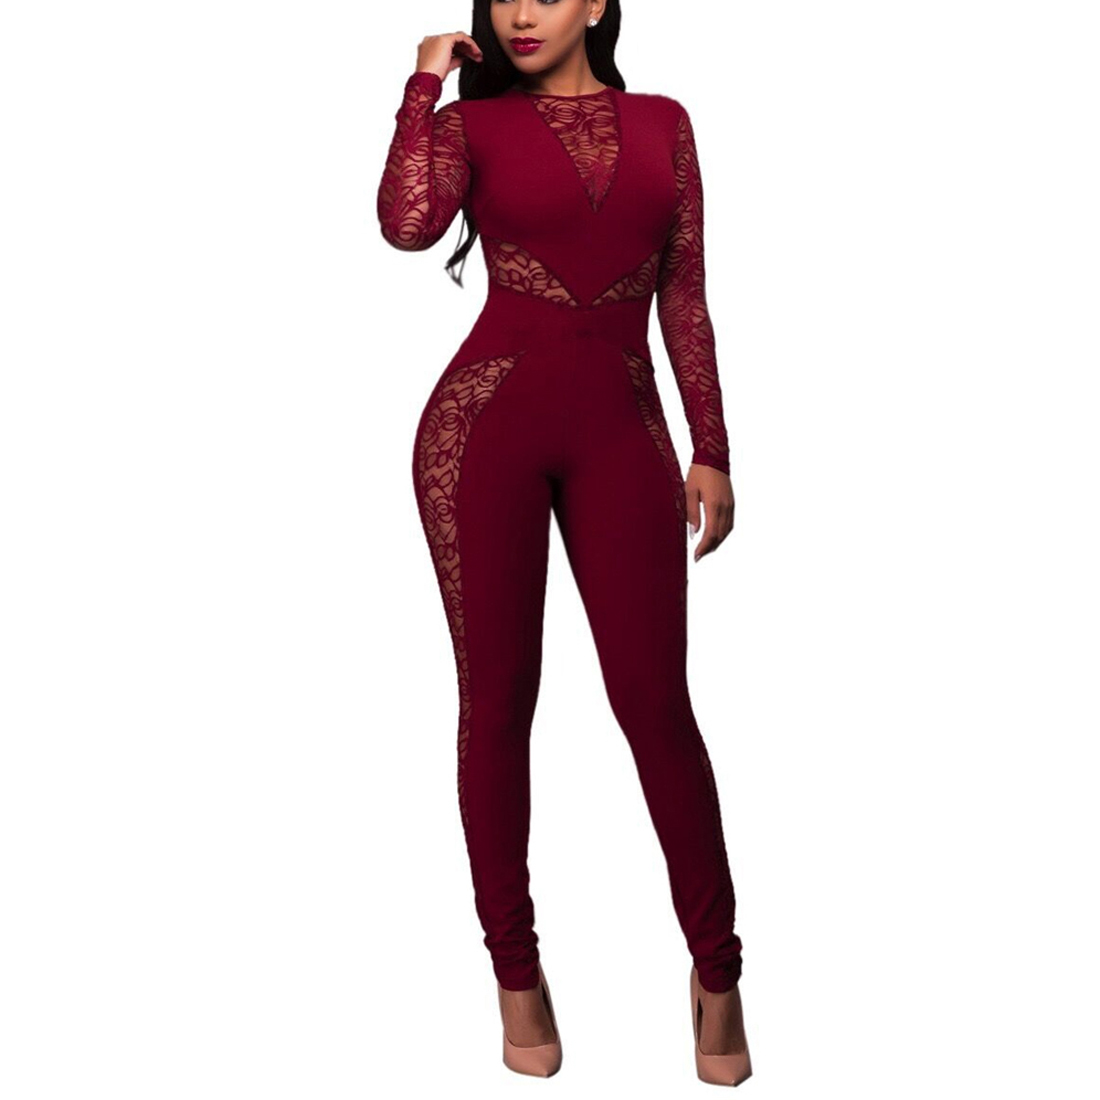 82b79e8179e0 Red Black Rompers Womens Jumpsuit Long Sleeve Hollow Out Lace Bodysuit  Women Zipper Up Patchwork Playsuits Combinaison Femme-in Jumpsuits from  Women s ...